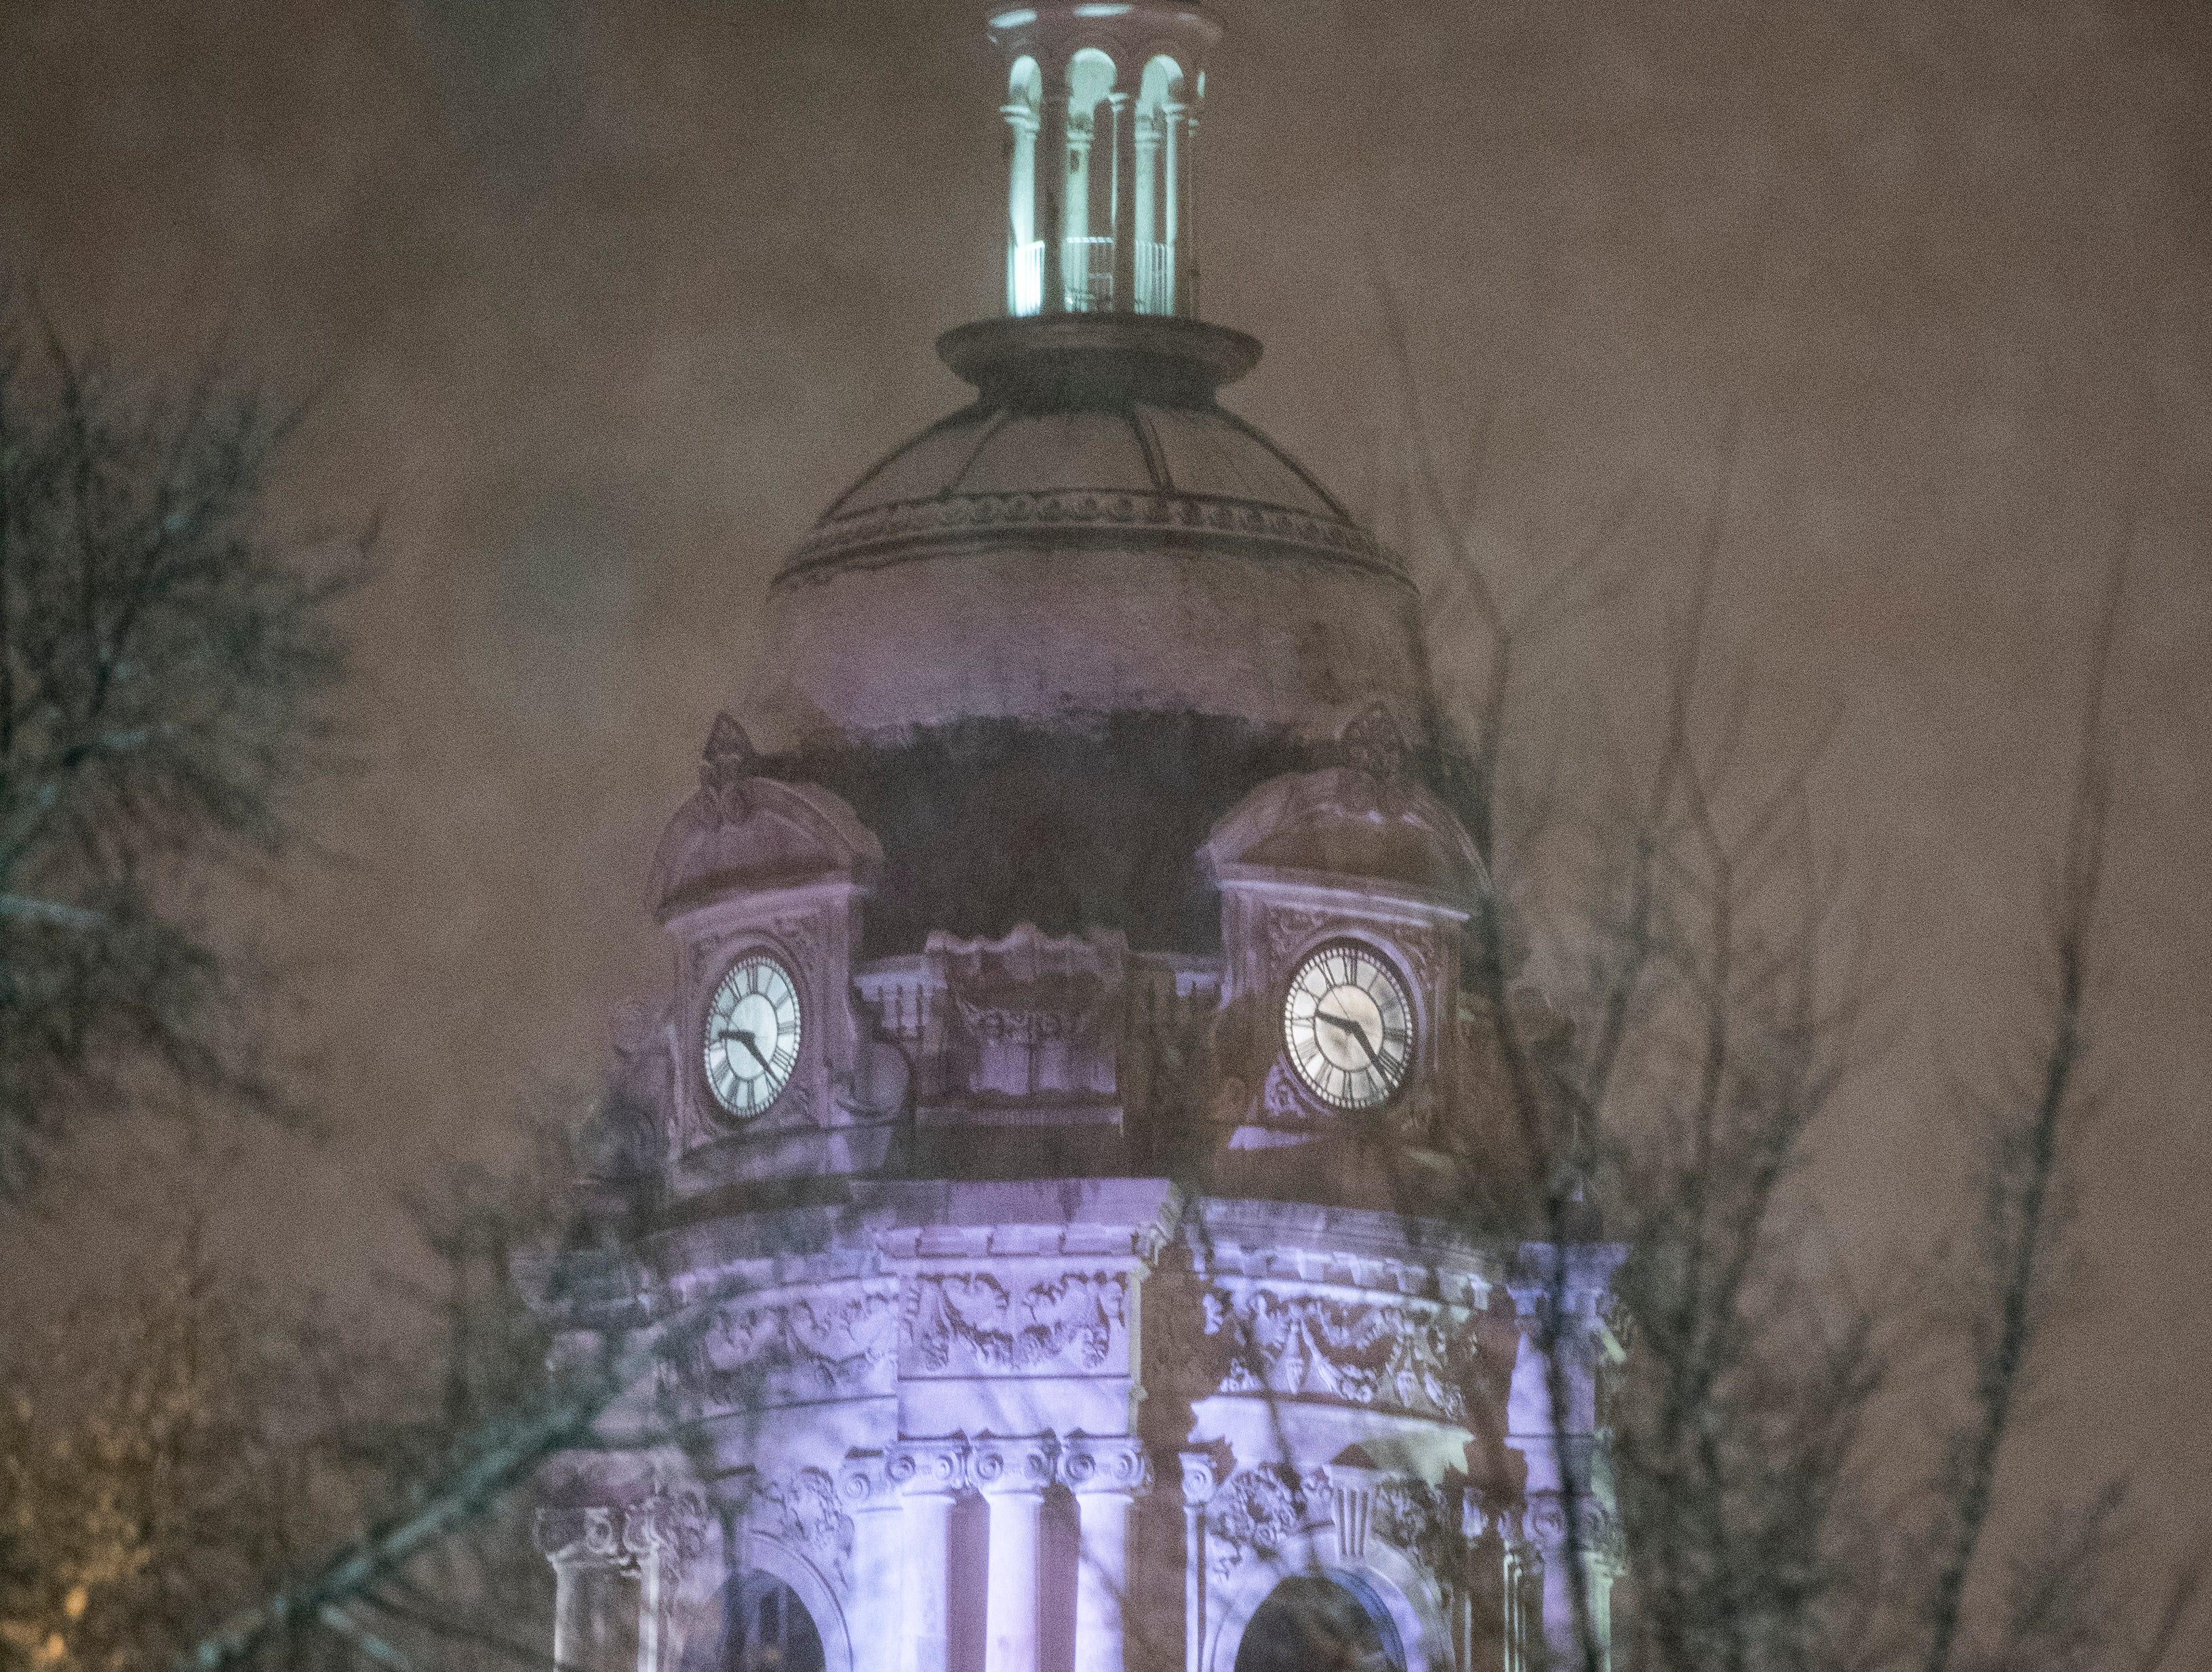 The top of the Old Court House in Downtown Evansville glows purple as snow beings to accumulate on the dome Friday evening Jan. 11, 2019.